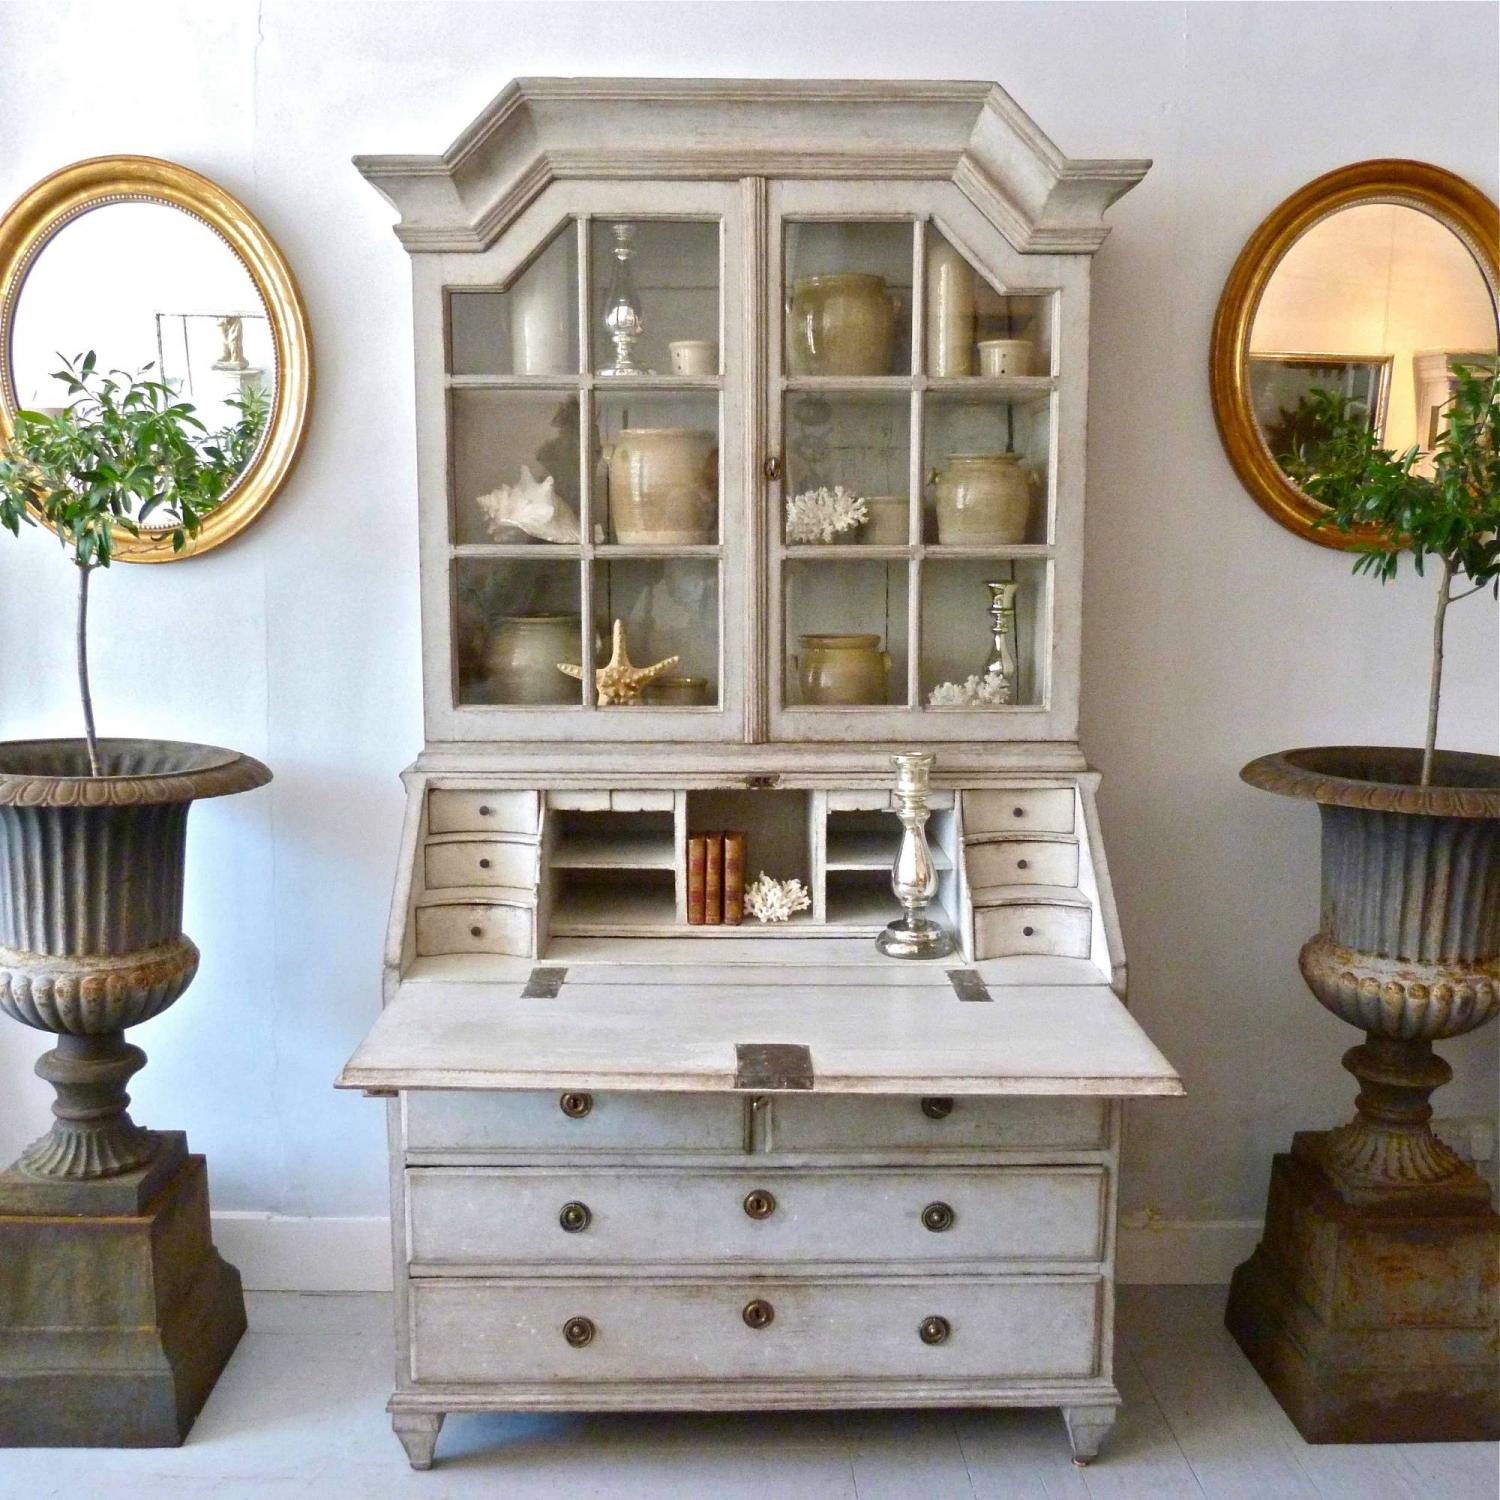 PERIOD GUSTAVIAN SECRETAIRE WITH VITRINE CABINET